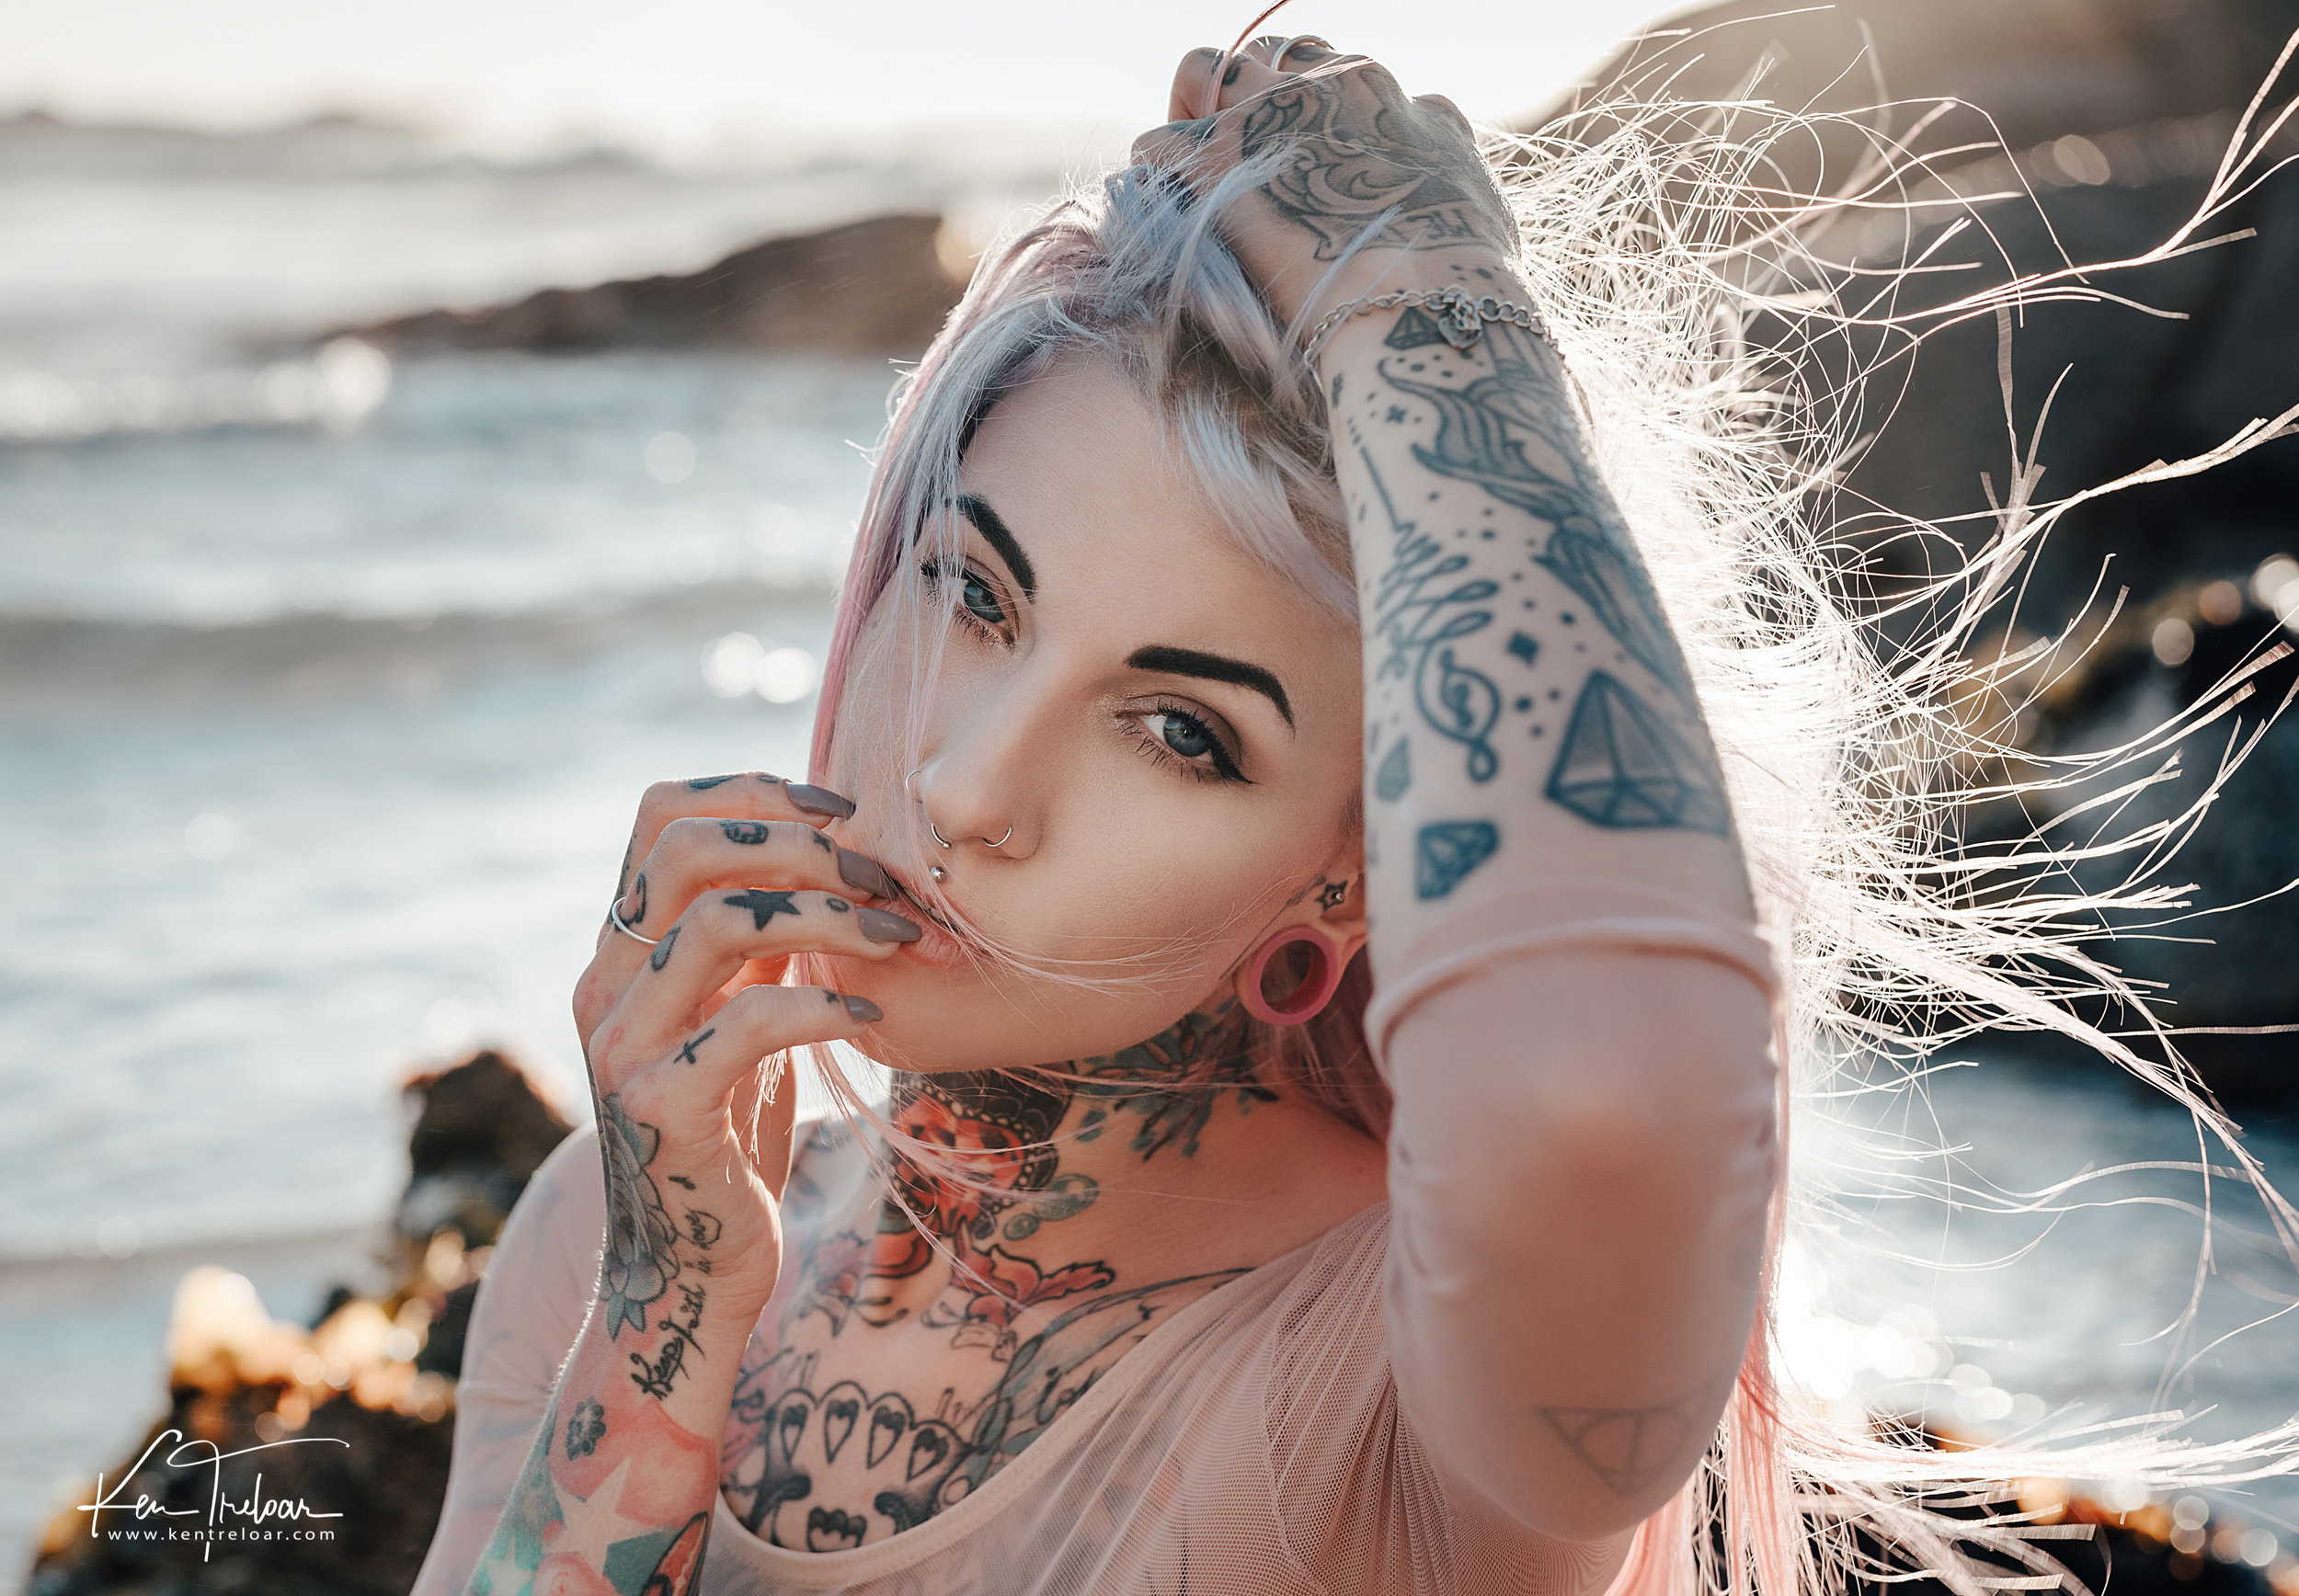 1_Christine Van Ink - Kief Modils - Cape Town LLandudno - Portrait session - by Ken Treloar Photography (sml)-8.jpg